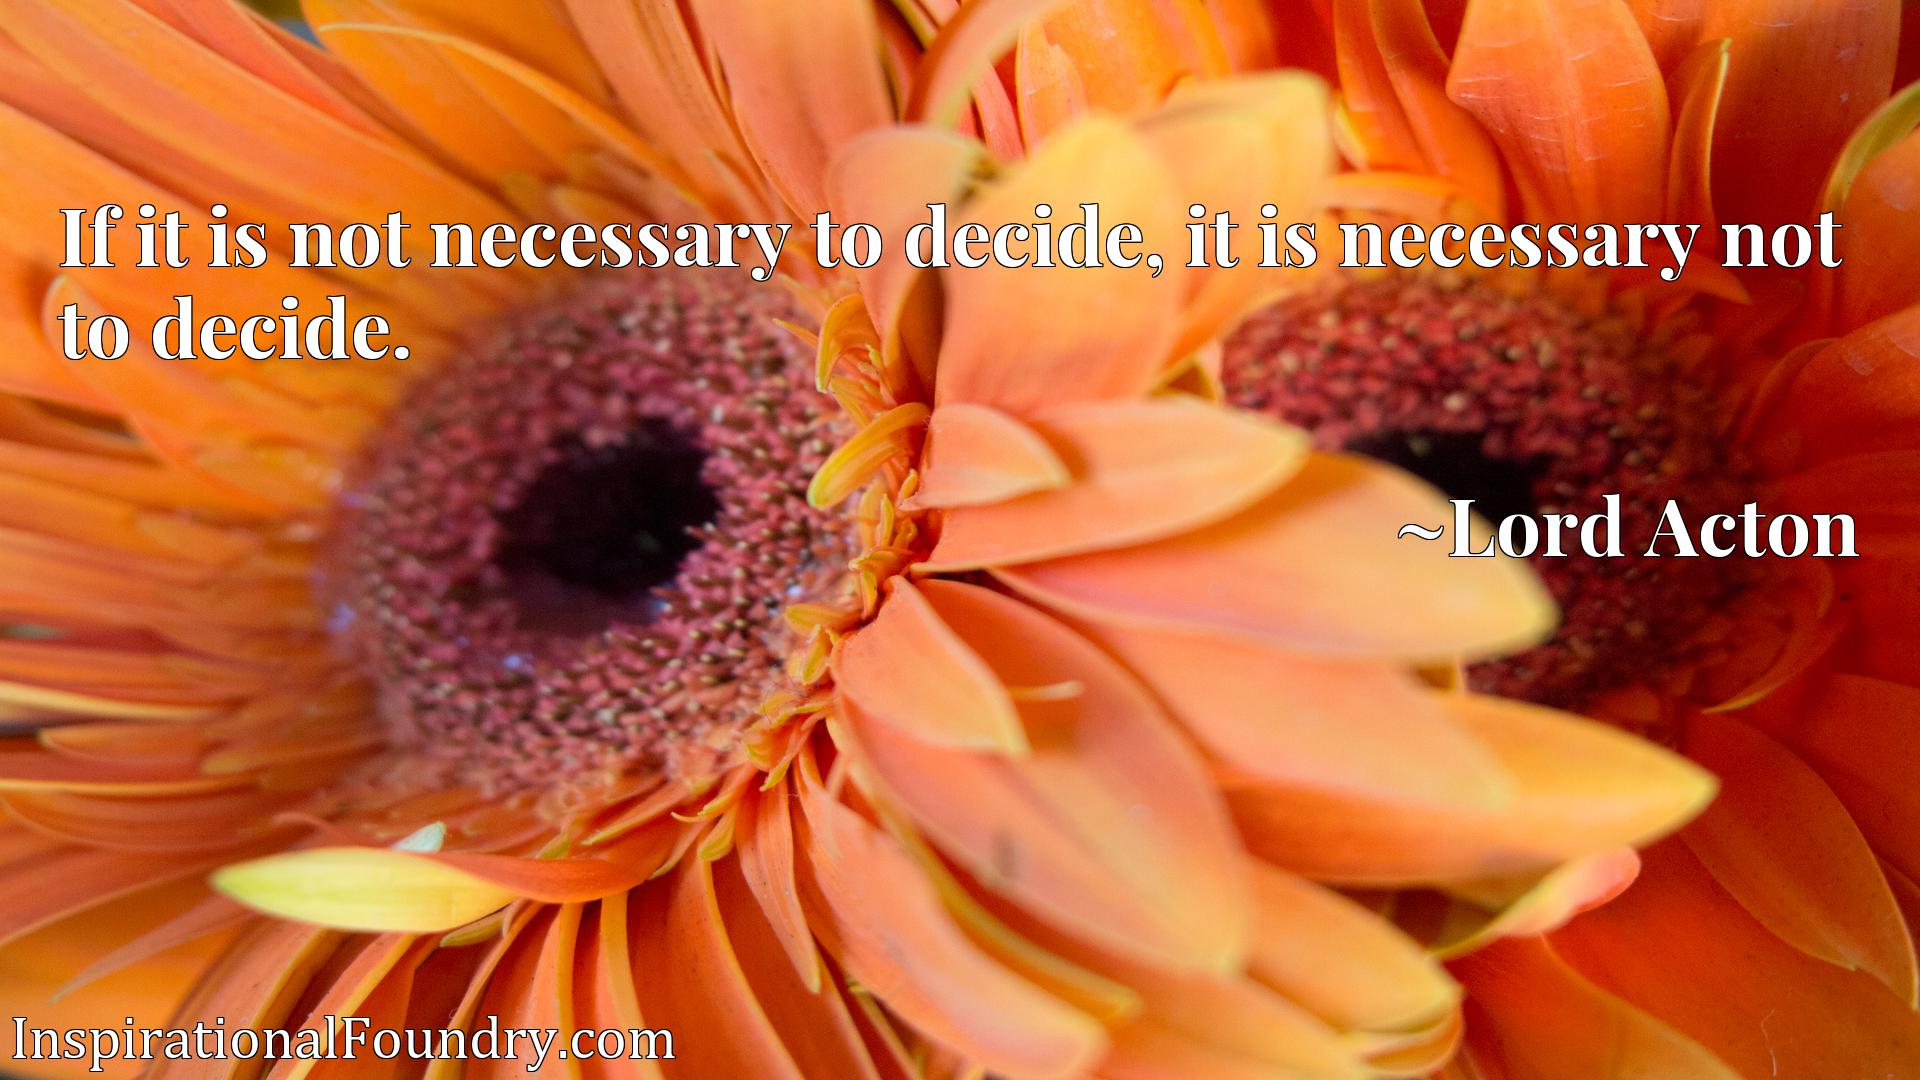 If it is not necessary to decide, it is necessary not to decide.